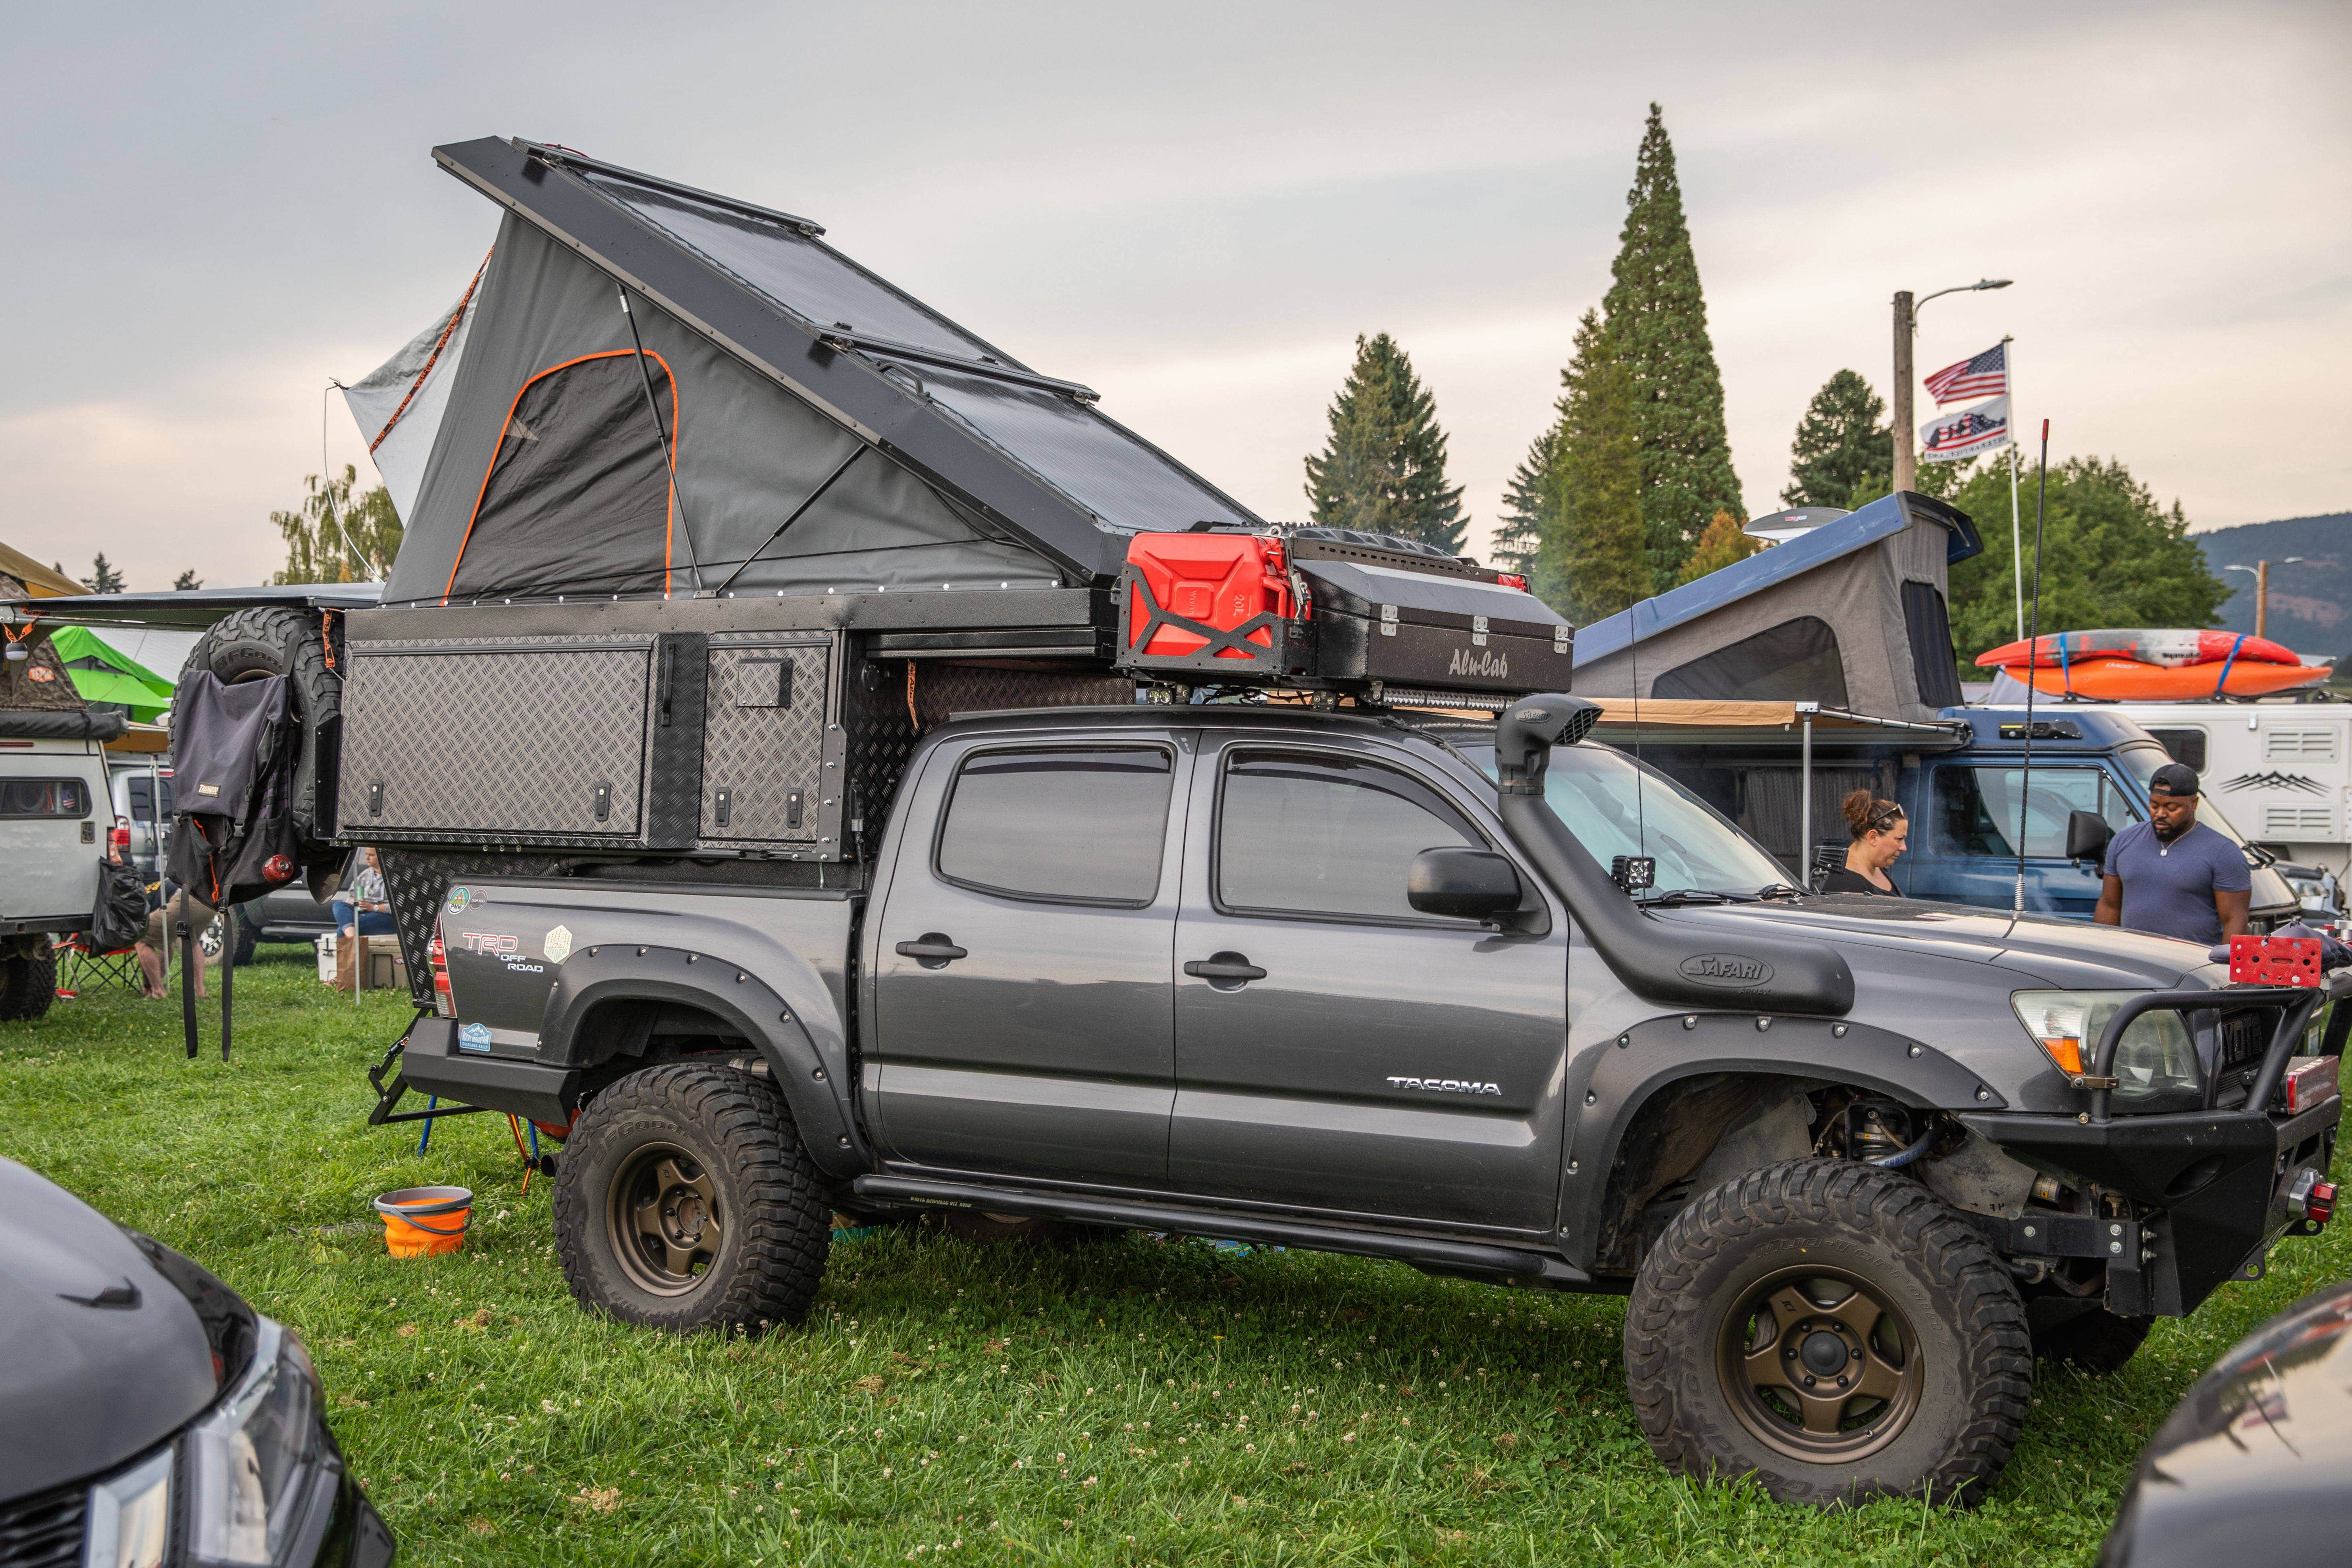 Toyo Tires Trailpass: Gray Toyota Tacoma with Alu-Cab Khaya tent and camper